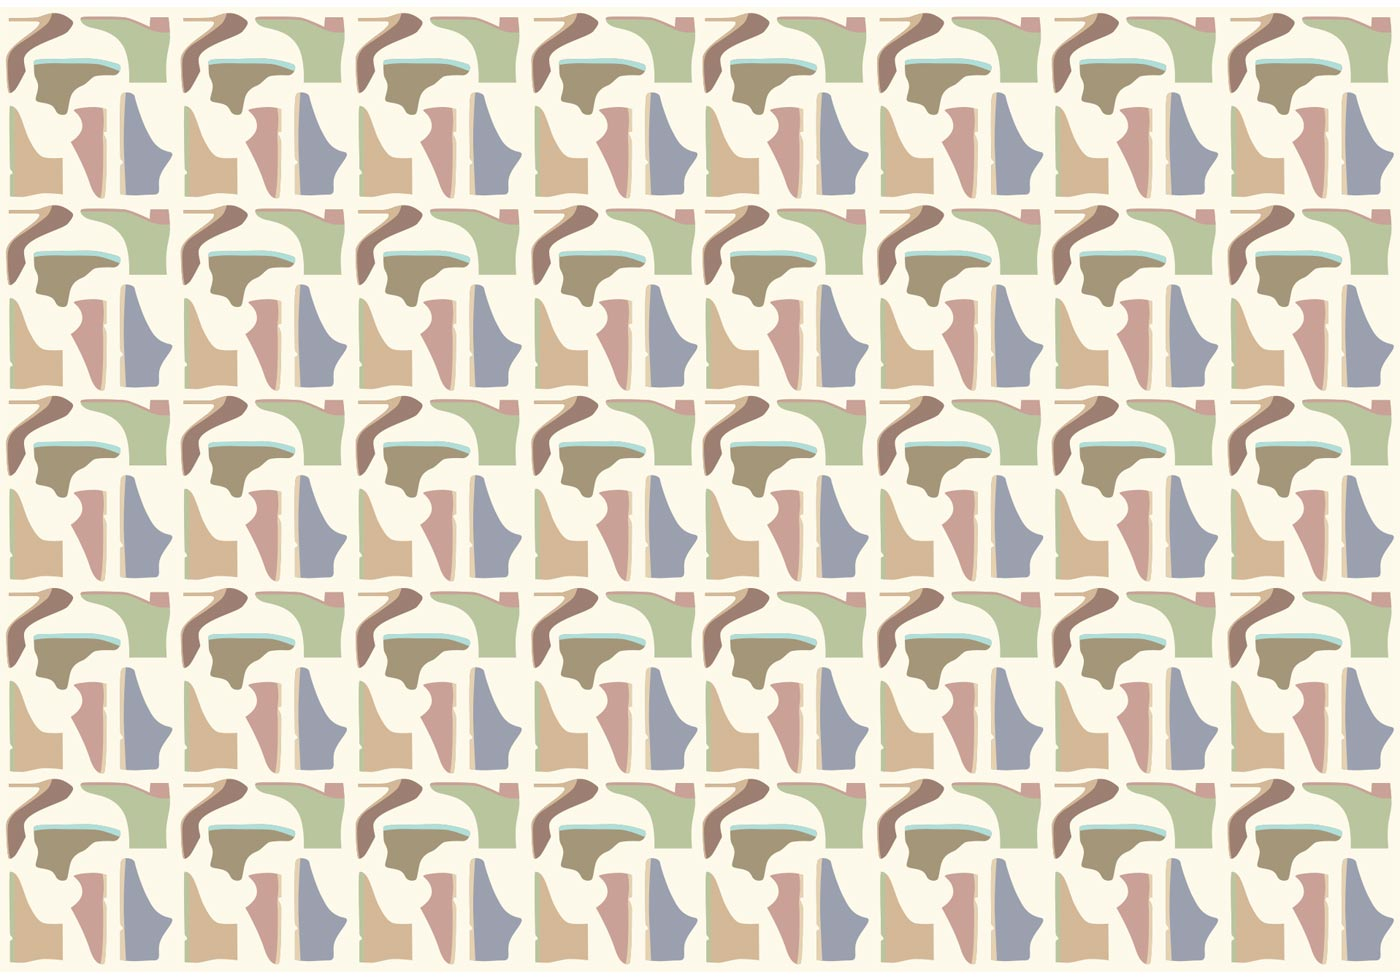 23be41c83da4 Shoes Pattern Background Vector - Download Free Vector Art